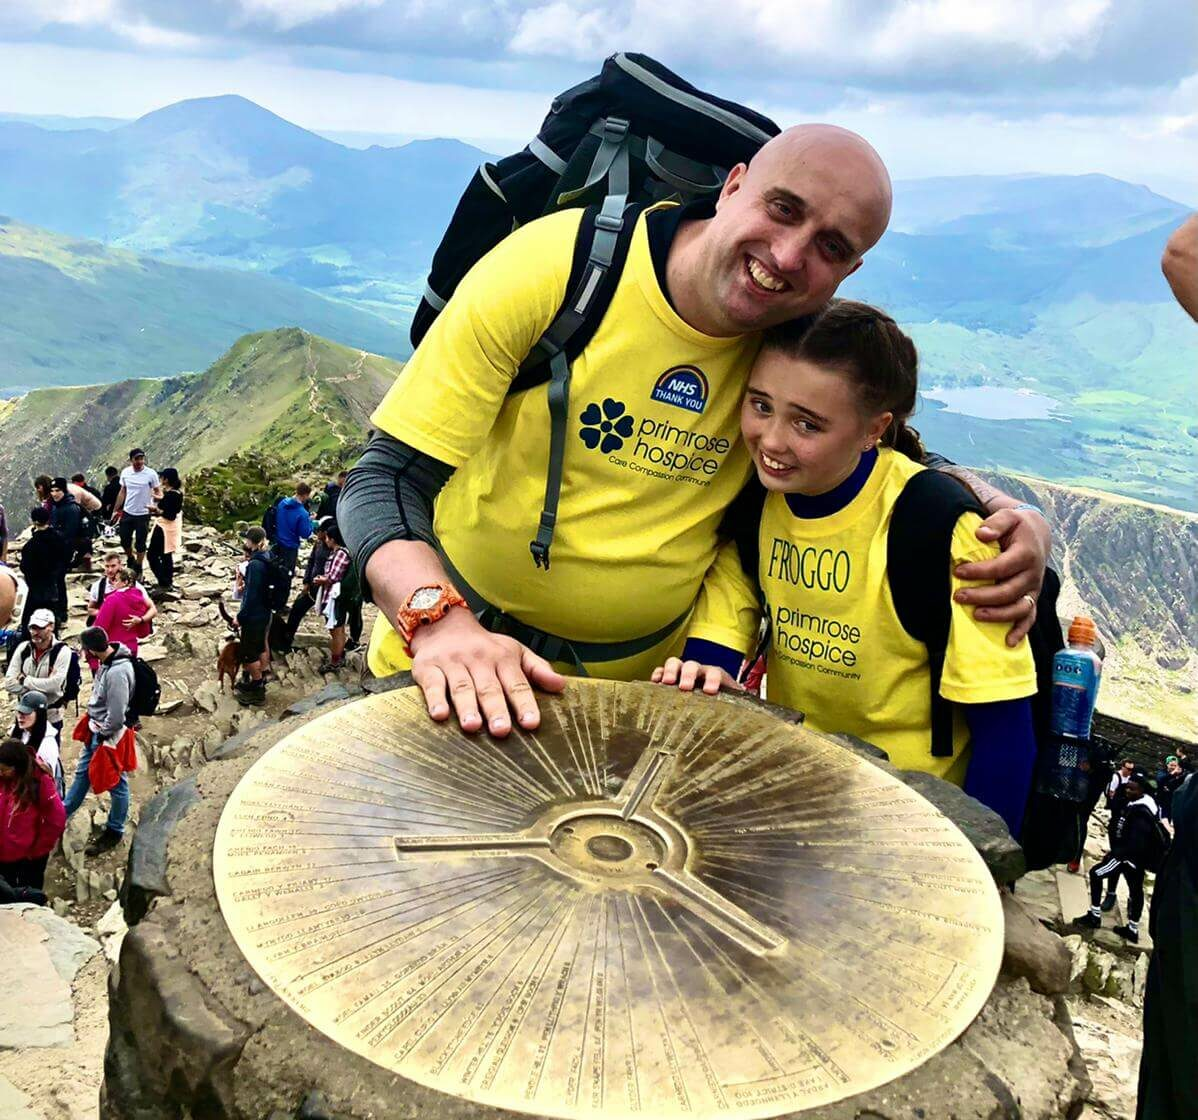 Dad Leighton with his daughter Chloe in Primrose Hospice t-shirts at the summit of Mount Snowdon